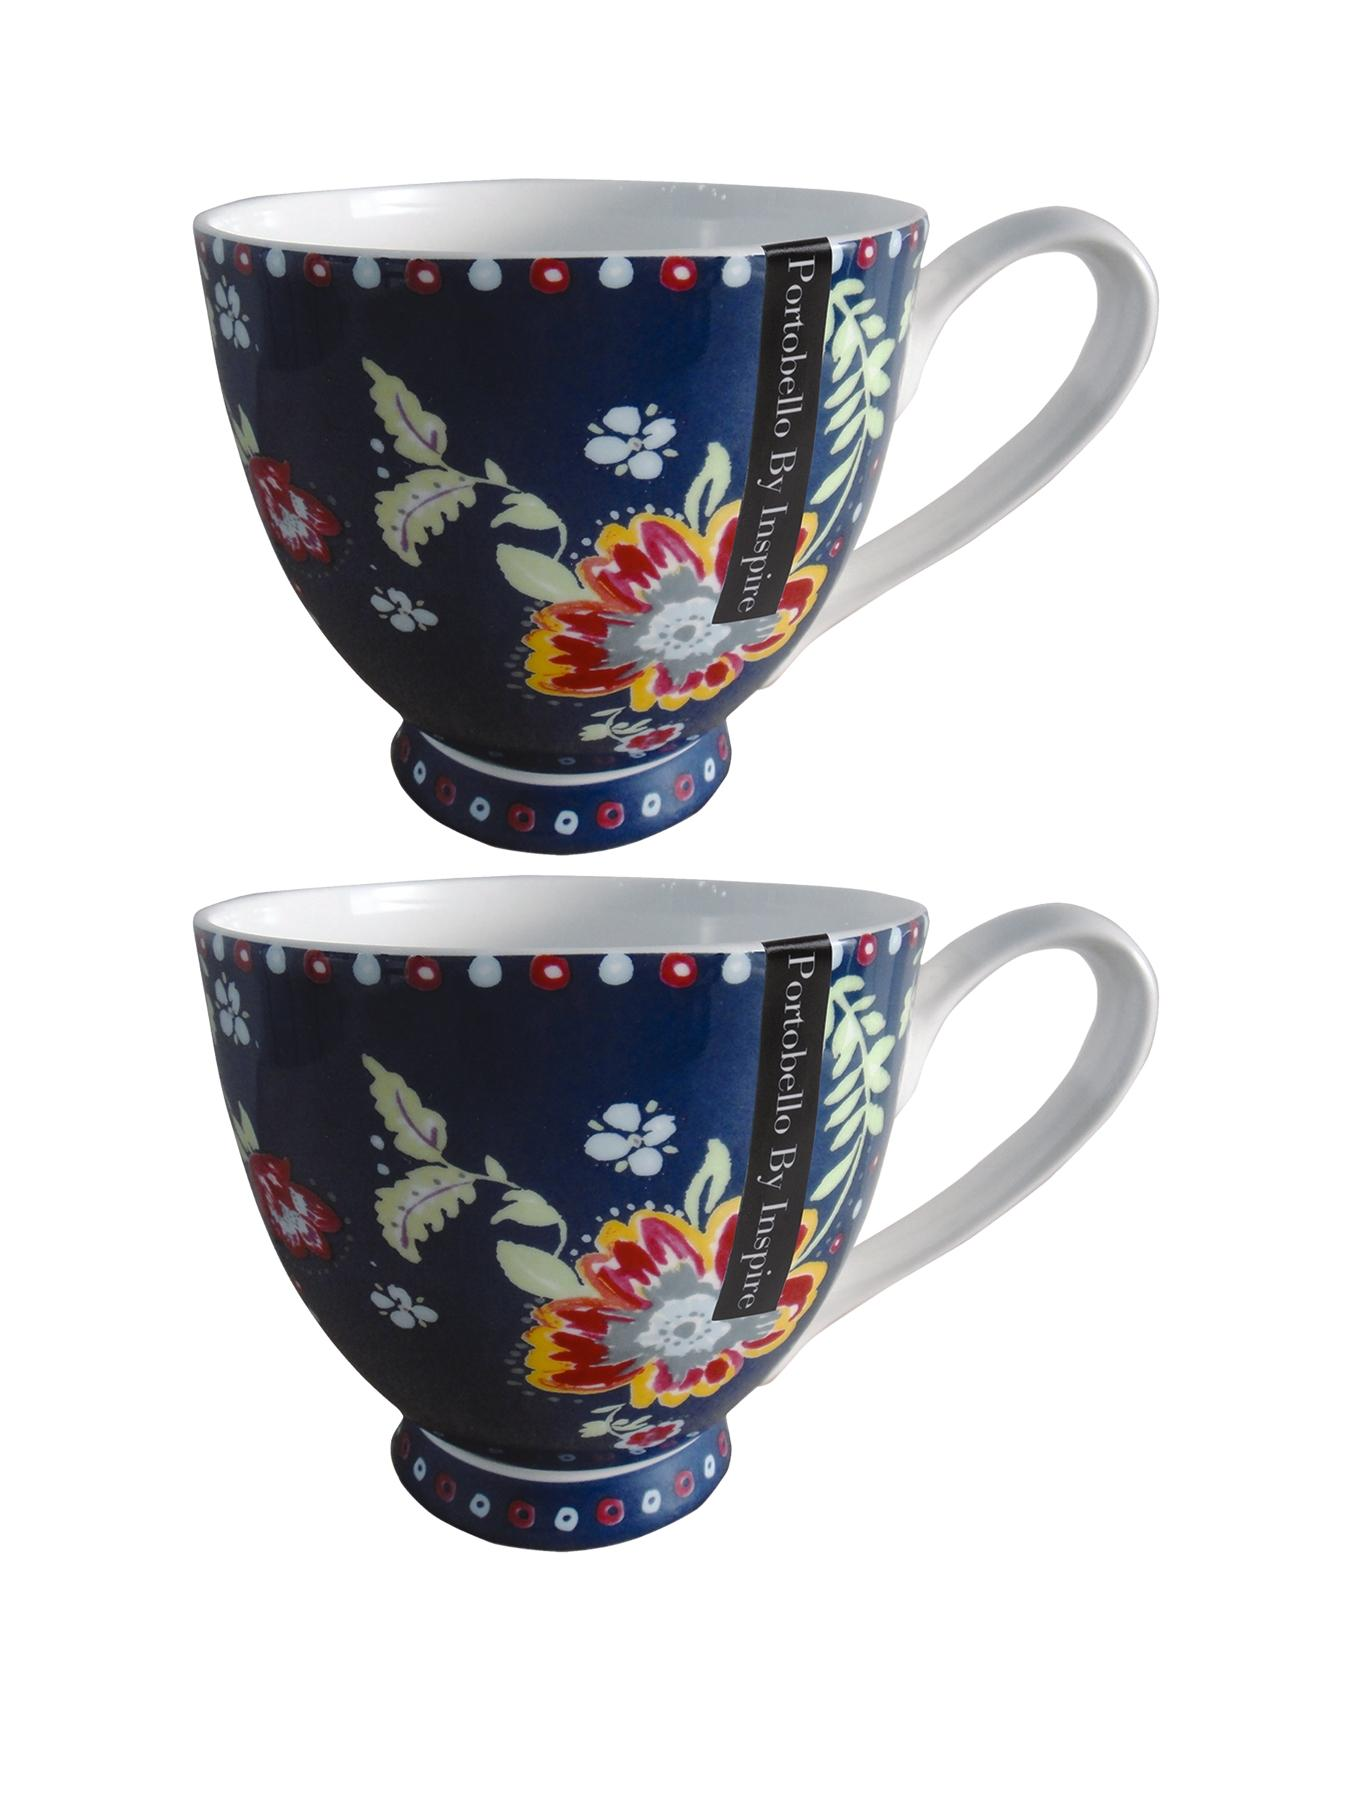 Boho Footed Mugs (Set of 2) - Multi